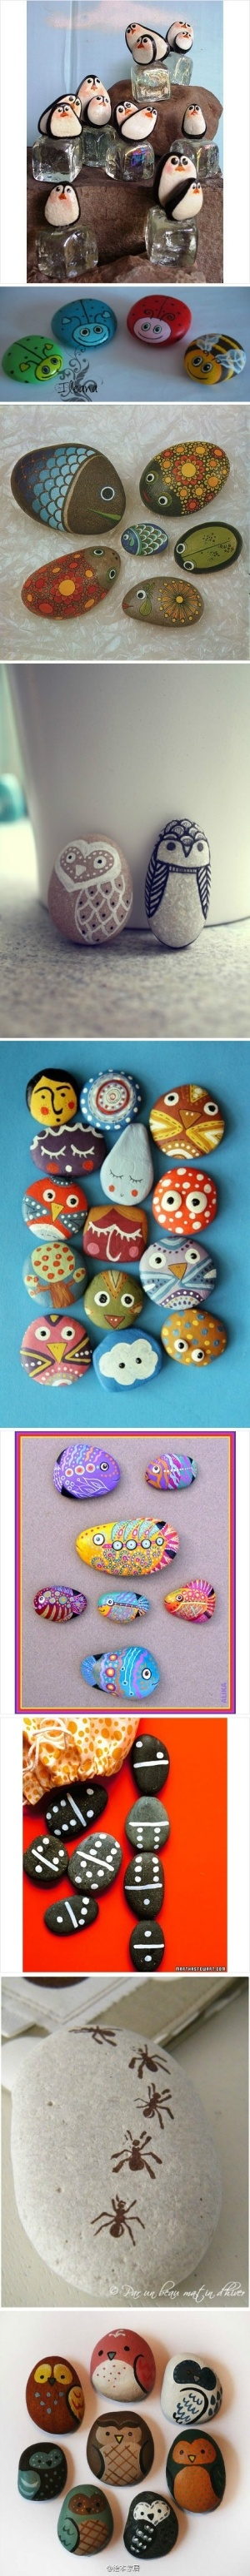 Painted stones for in the garden. Also, domino stones